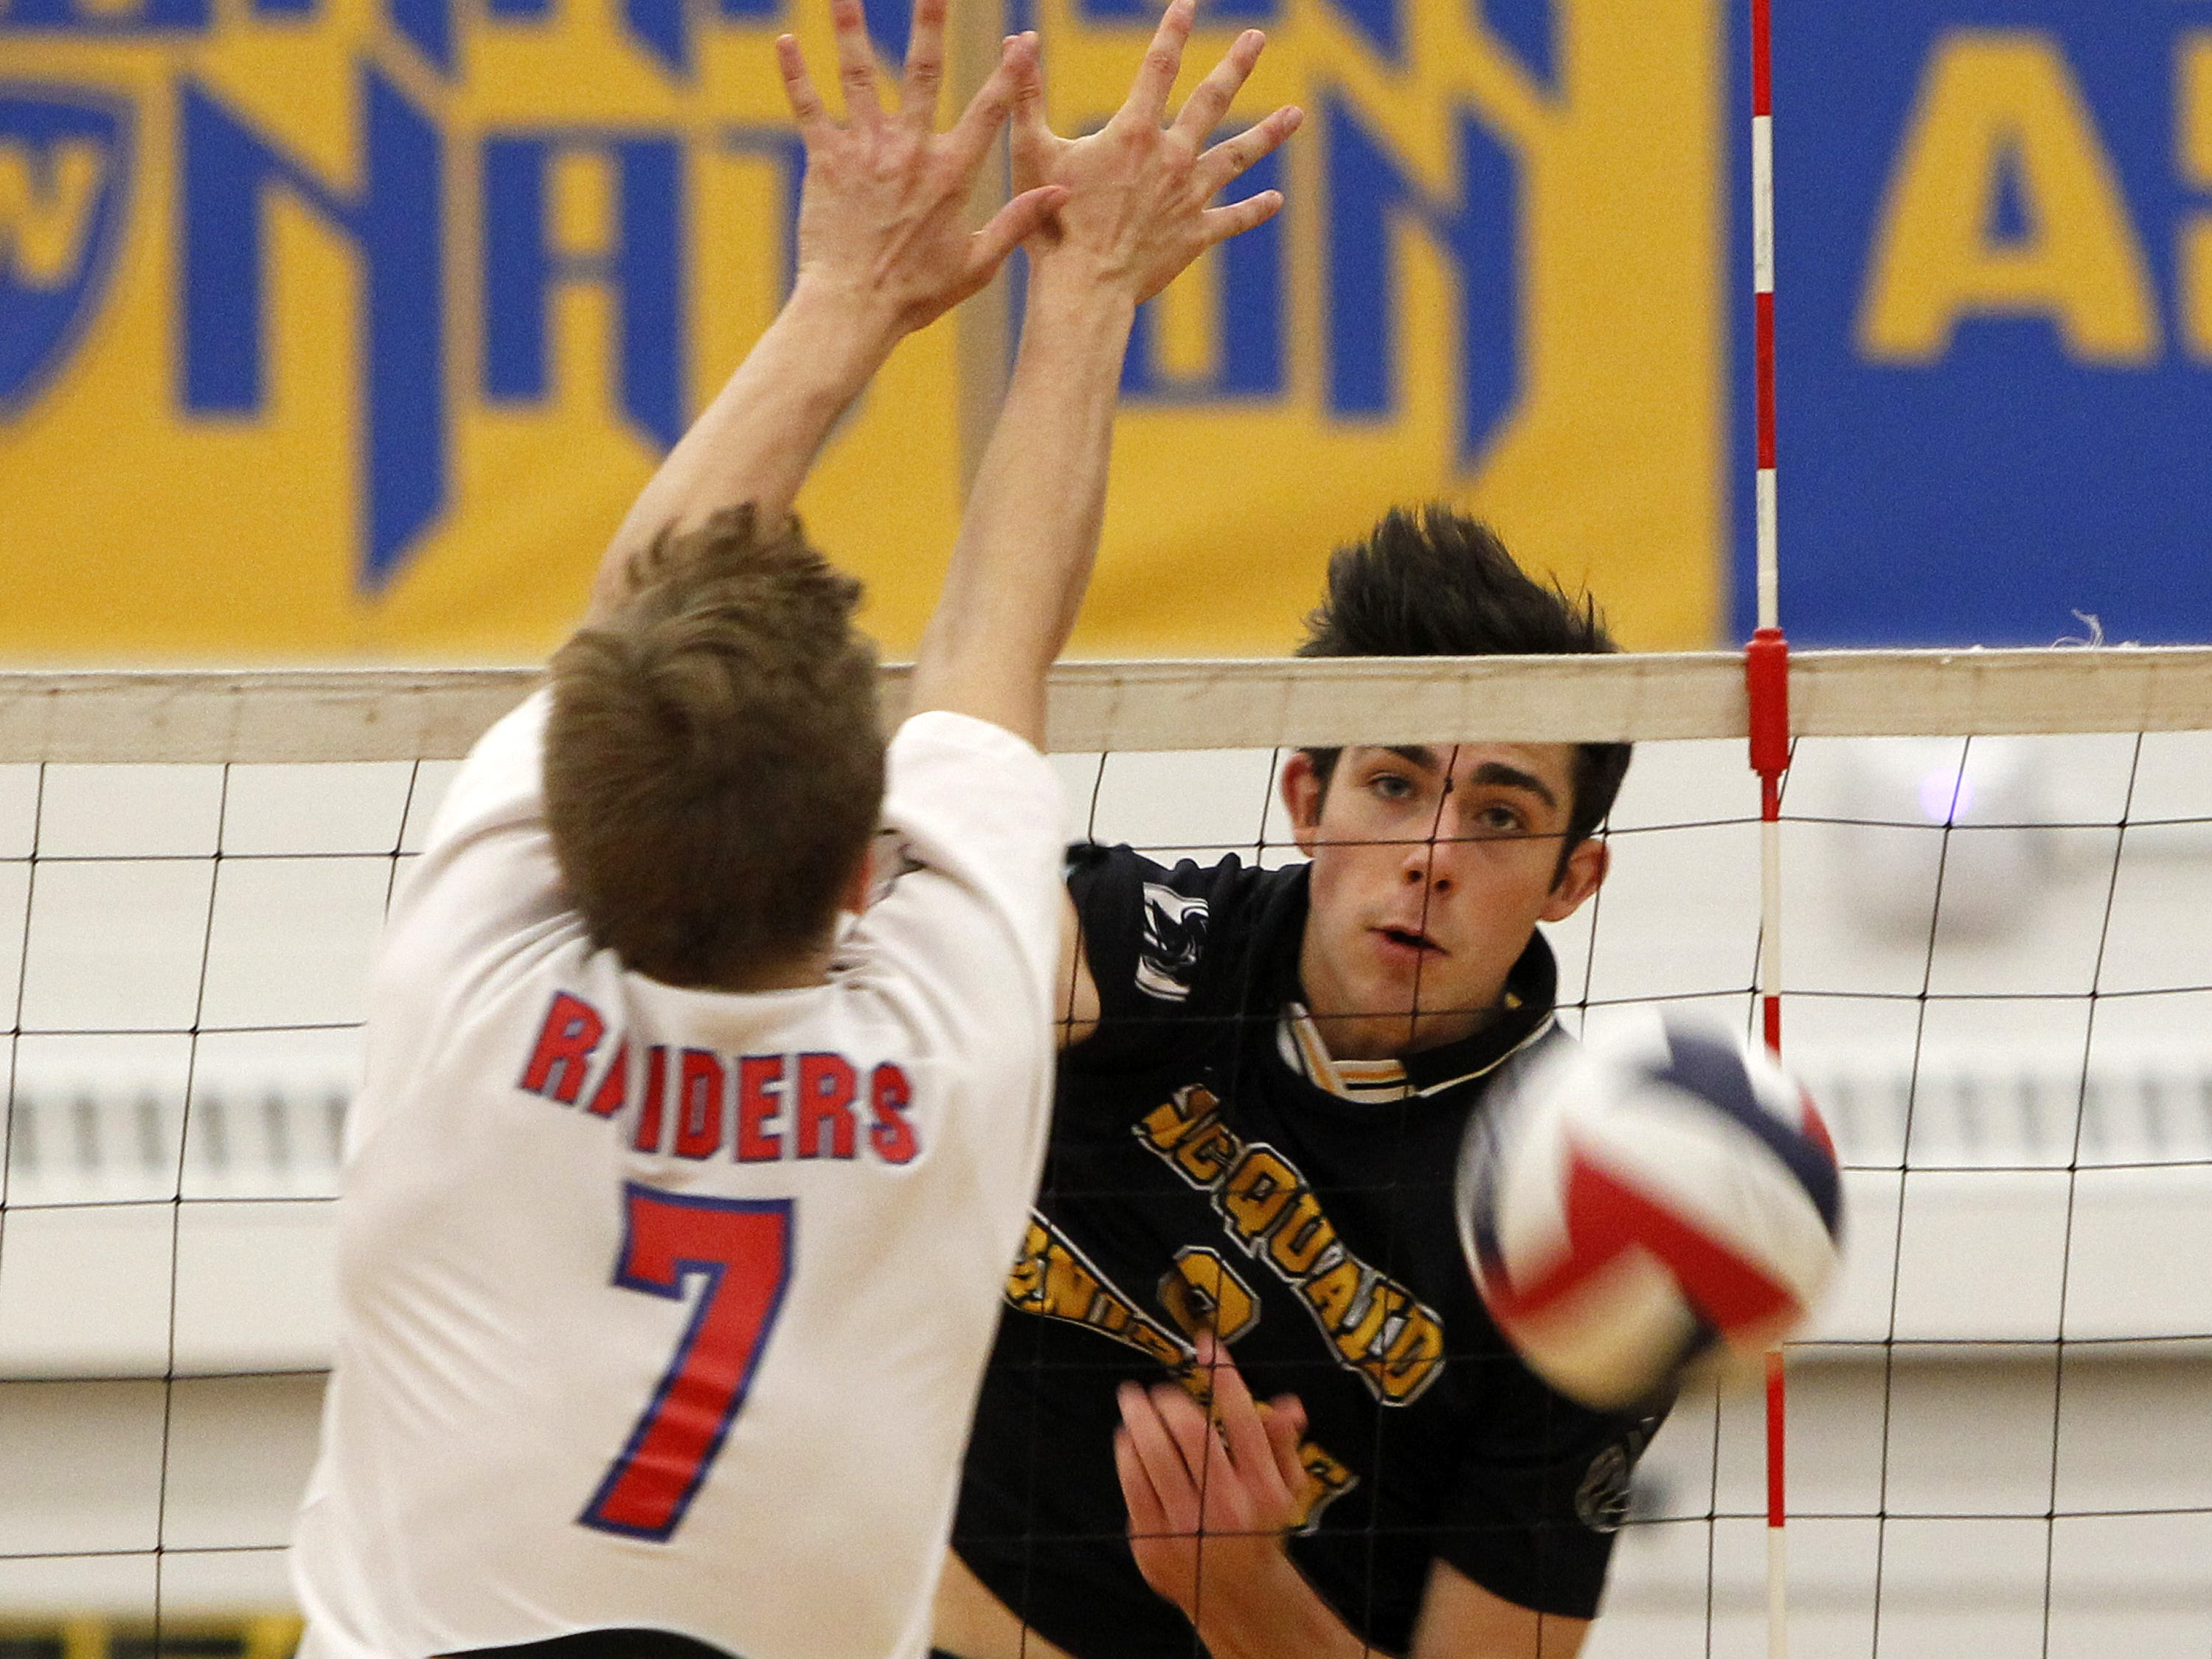 Colby Harriman, shown during the 2013 Class A championship match against Fairport, played on three state title teams for McQuaid and was named All-Greater Rochester Co-Player of the Year in 2013.